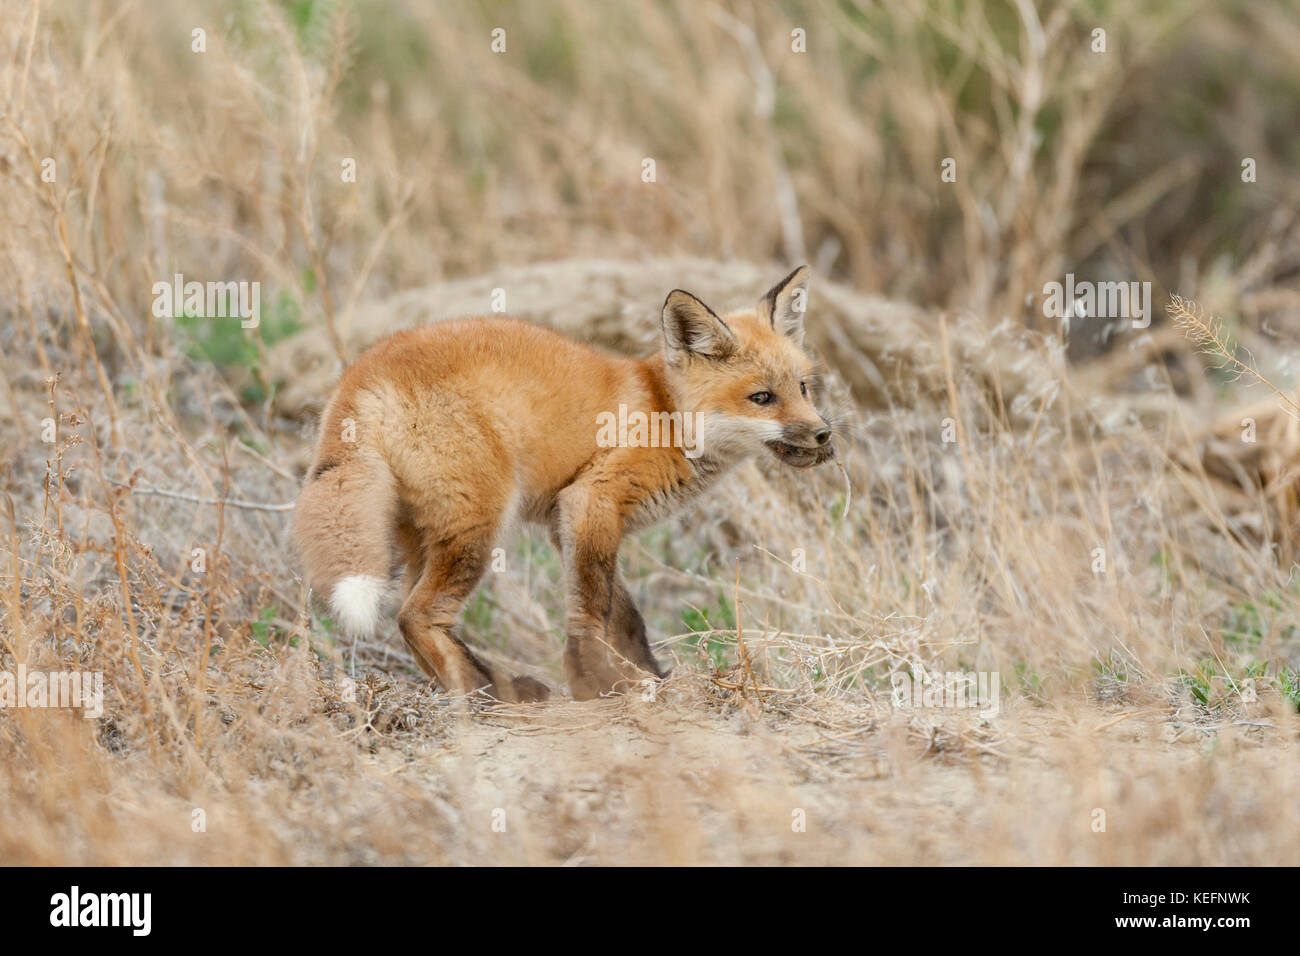 Red fox pup in Wyoming - Stock Image